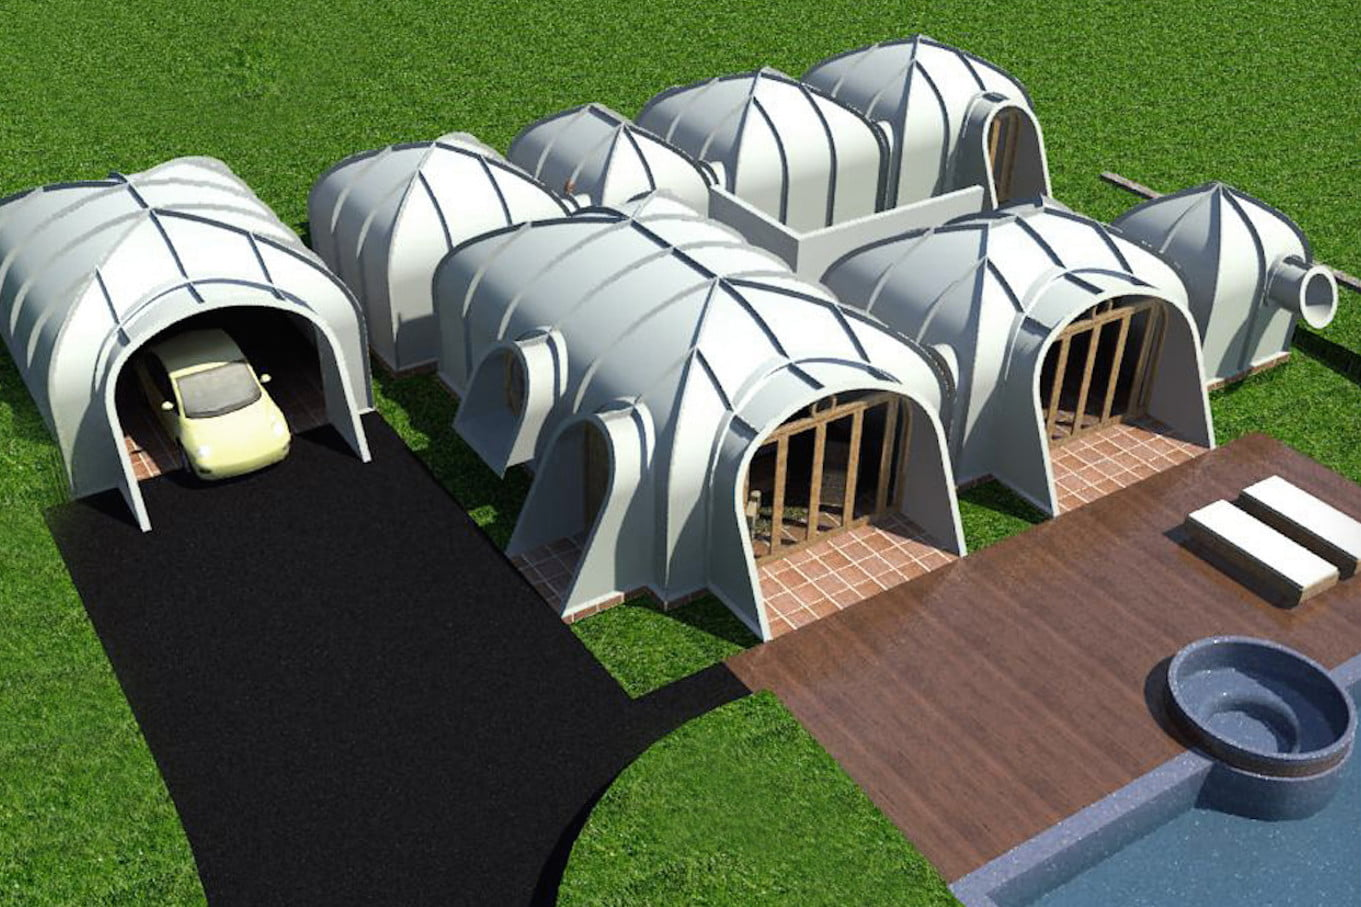 green magic homes are prefab houses covered in plants 0026